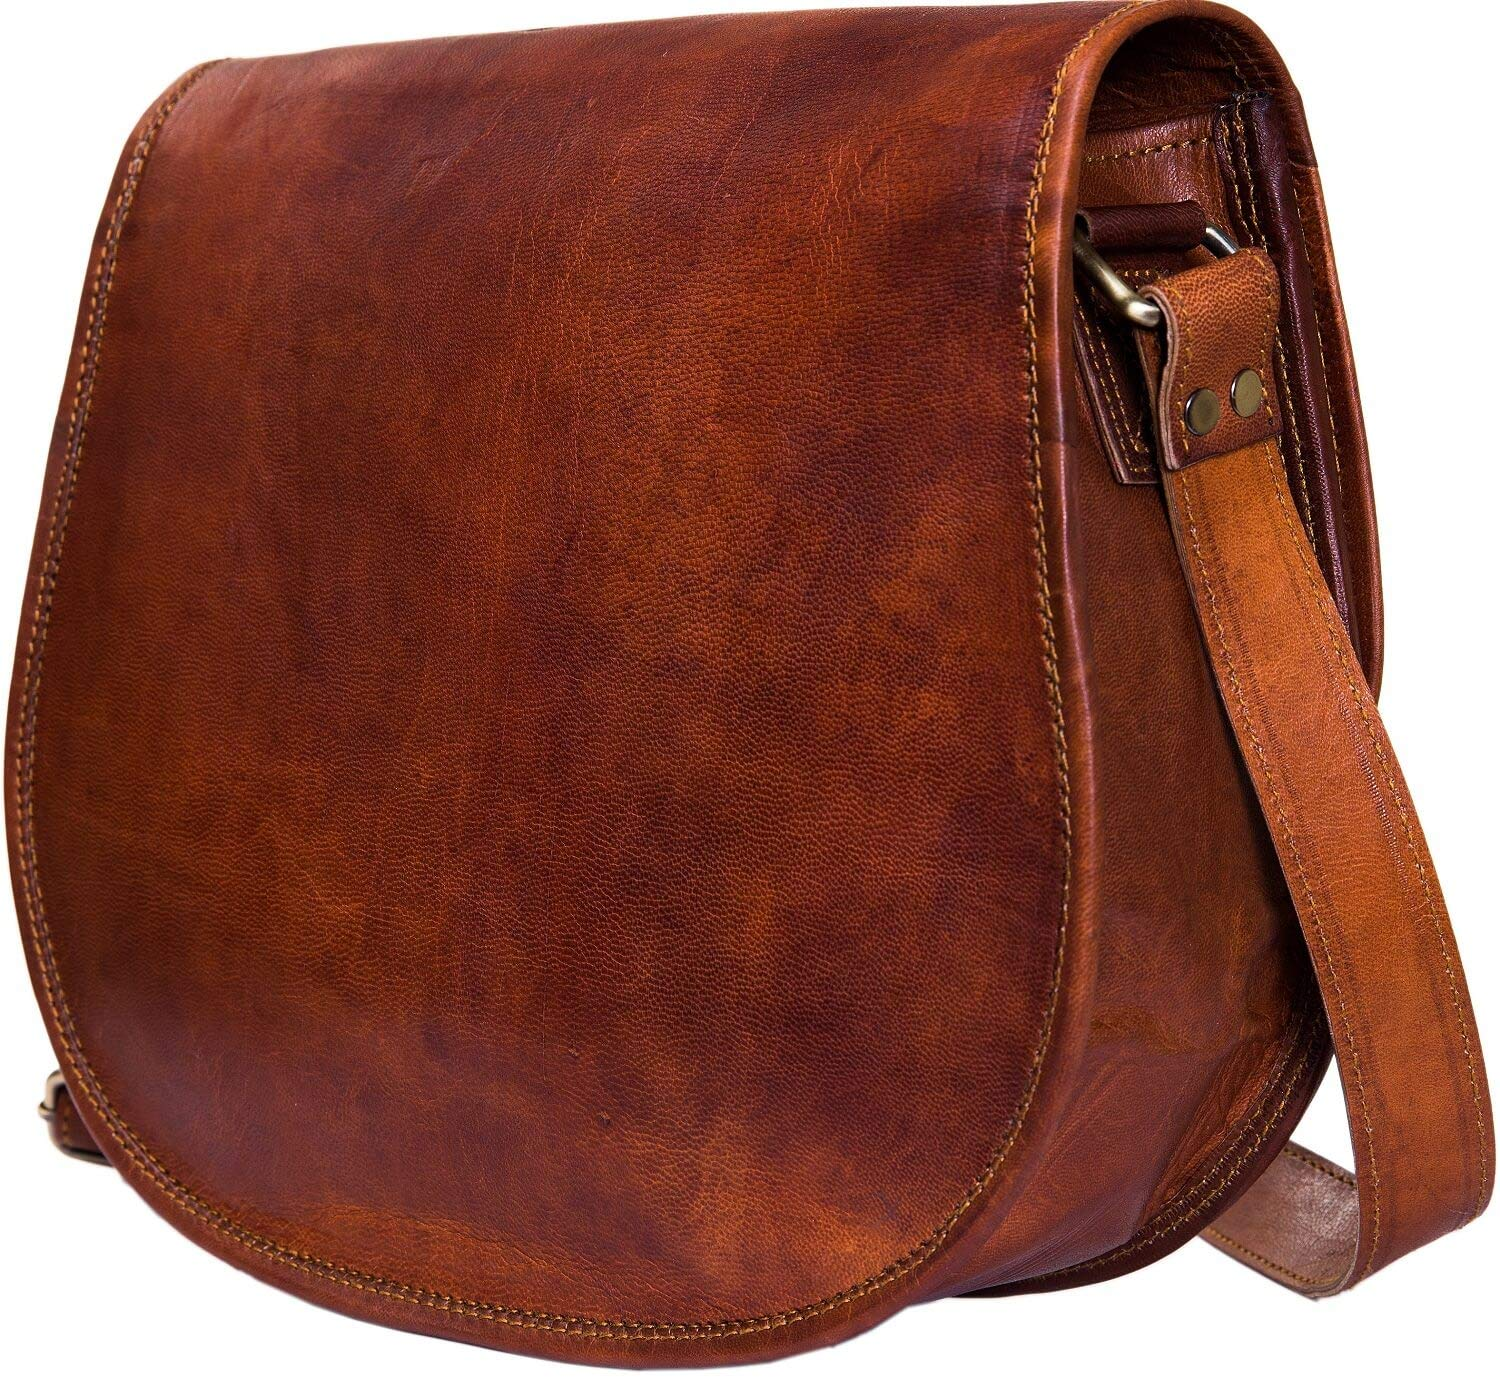 654cc8d011dd Urban Leather Crossbody Bags for Women Saddle Bag Purse Shoulder Handbags  for Young Women   Teen Girls Vintage Brown Genuine Leather Satchel Spring  Handbag ...